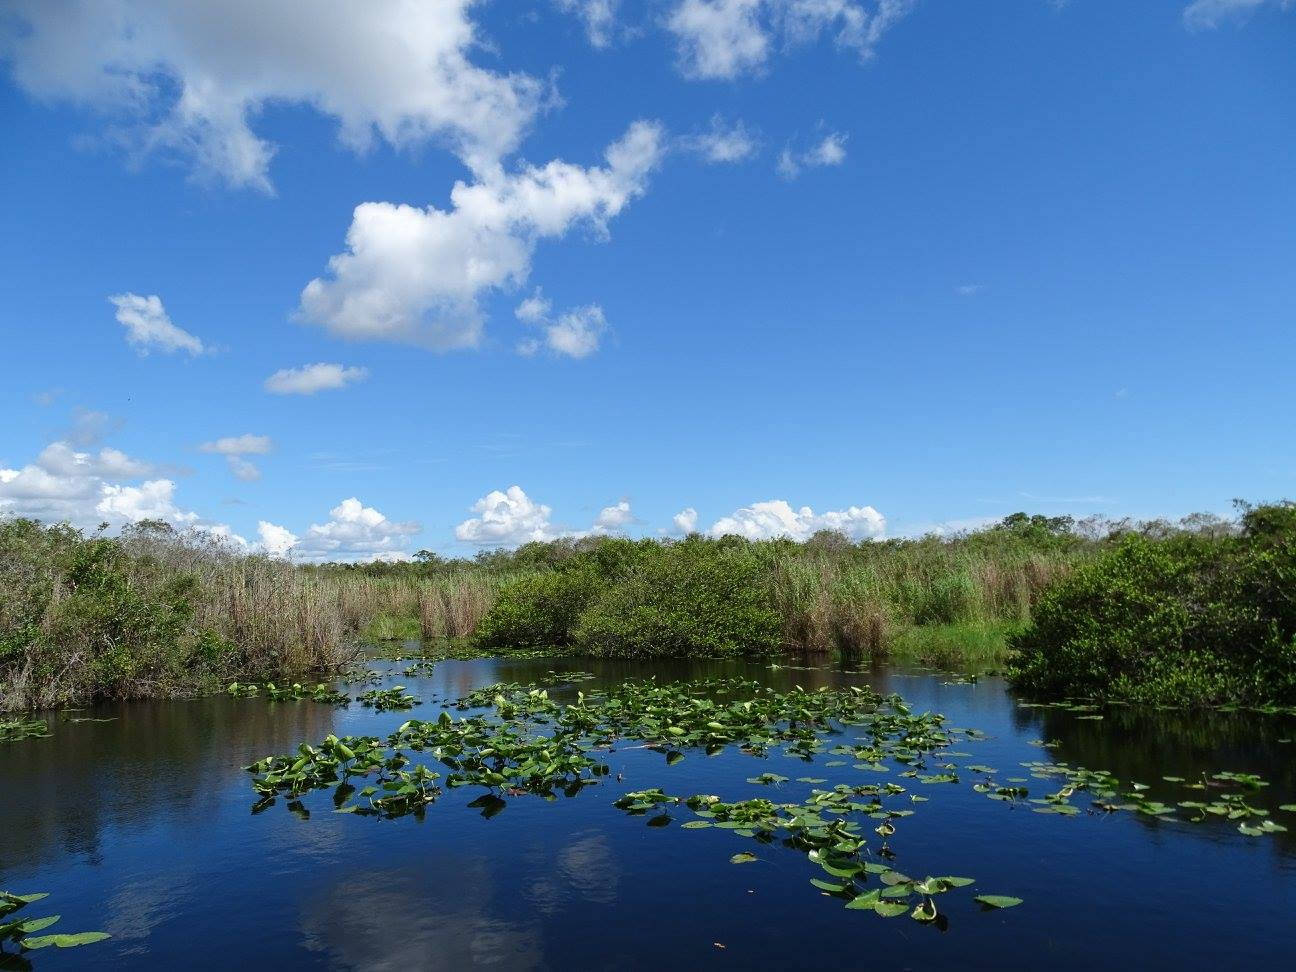 Everglades - Parc national